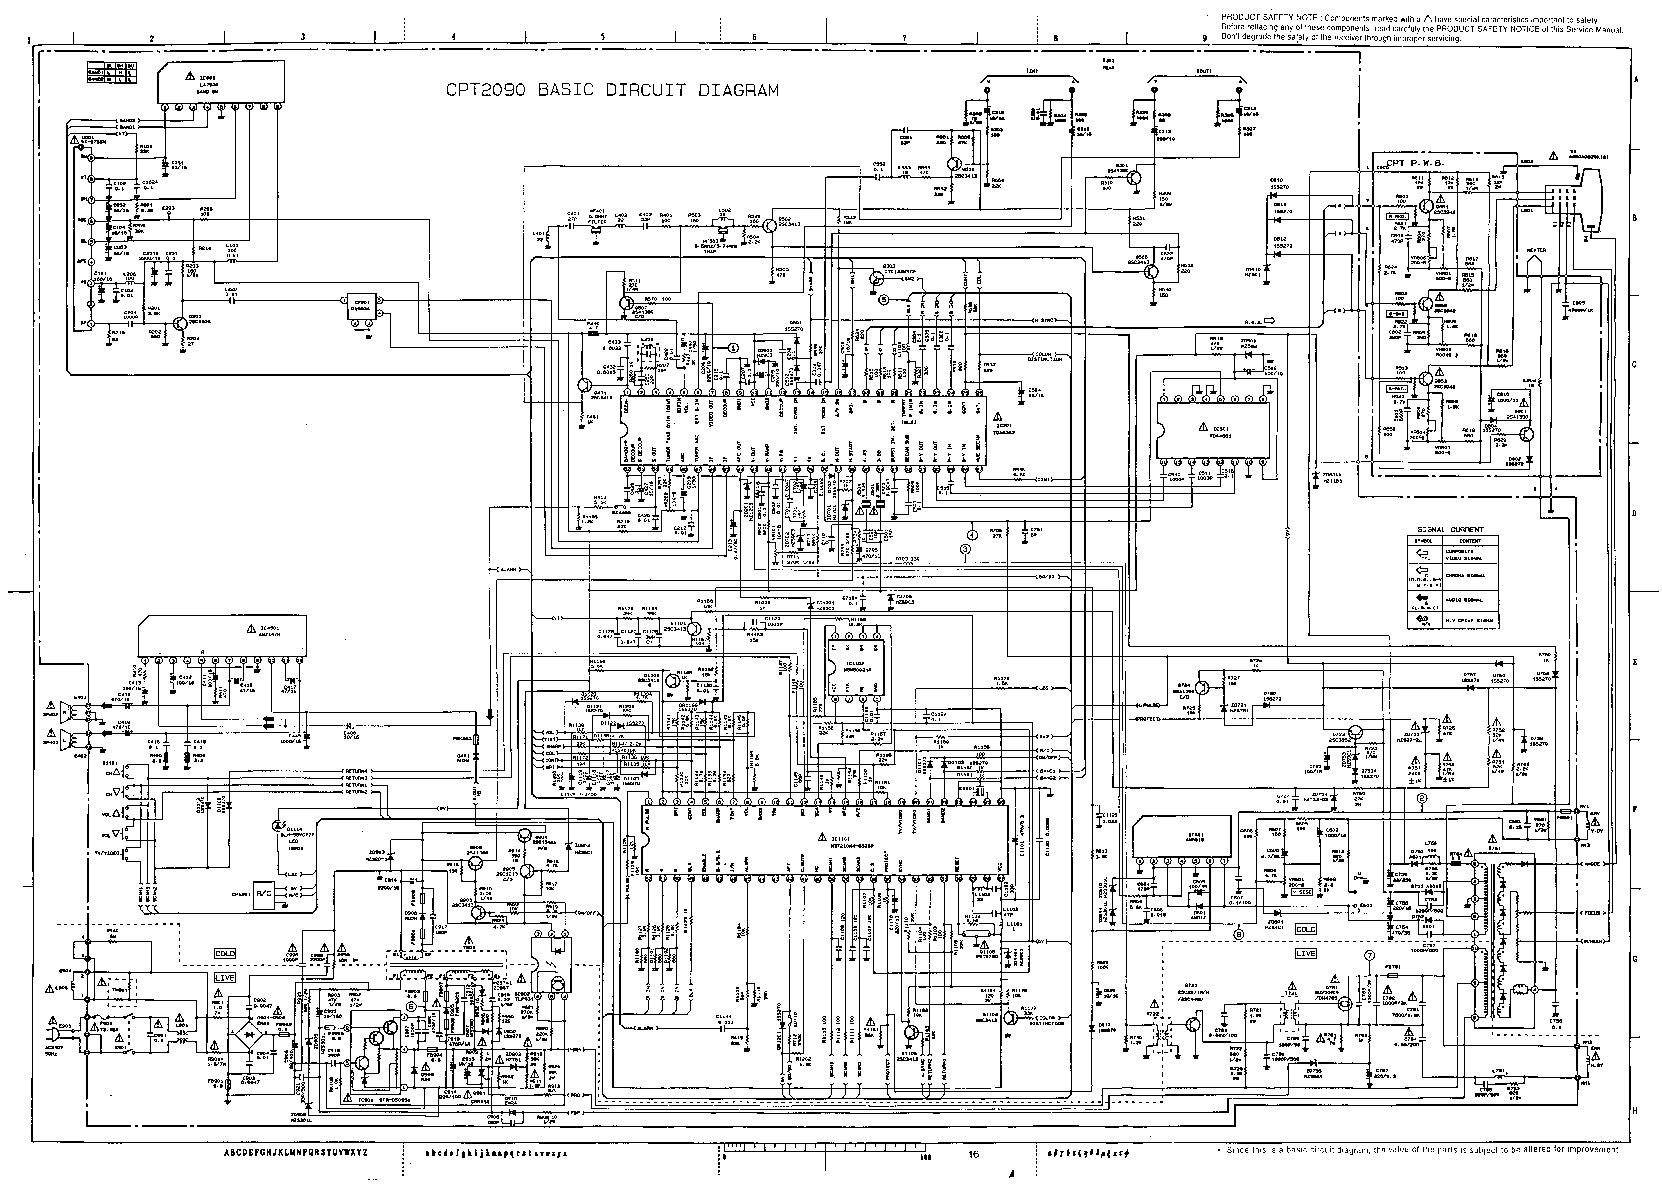 Sony Cdx Gt565up Wiring Diagram likewise Ddx470 Wiring Diagram in addition Jvc Car Audio likewise Jvc Tv Diagram likewise 4 Channel Wiring Diagram Head Unit. on wiring diagram for kenwood cd receiver